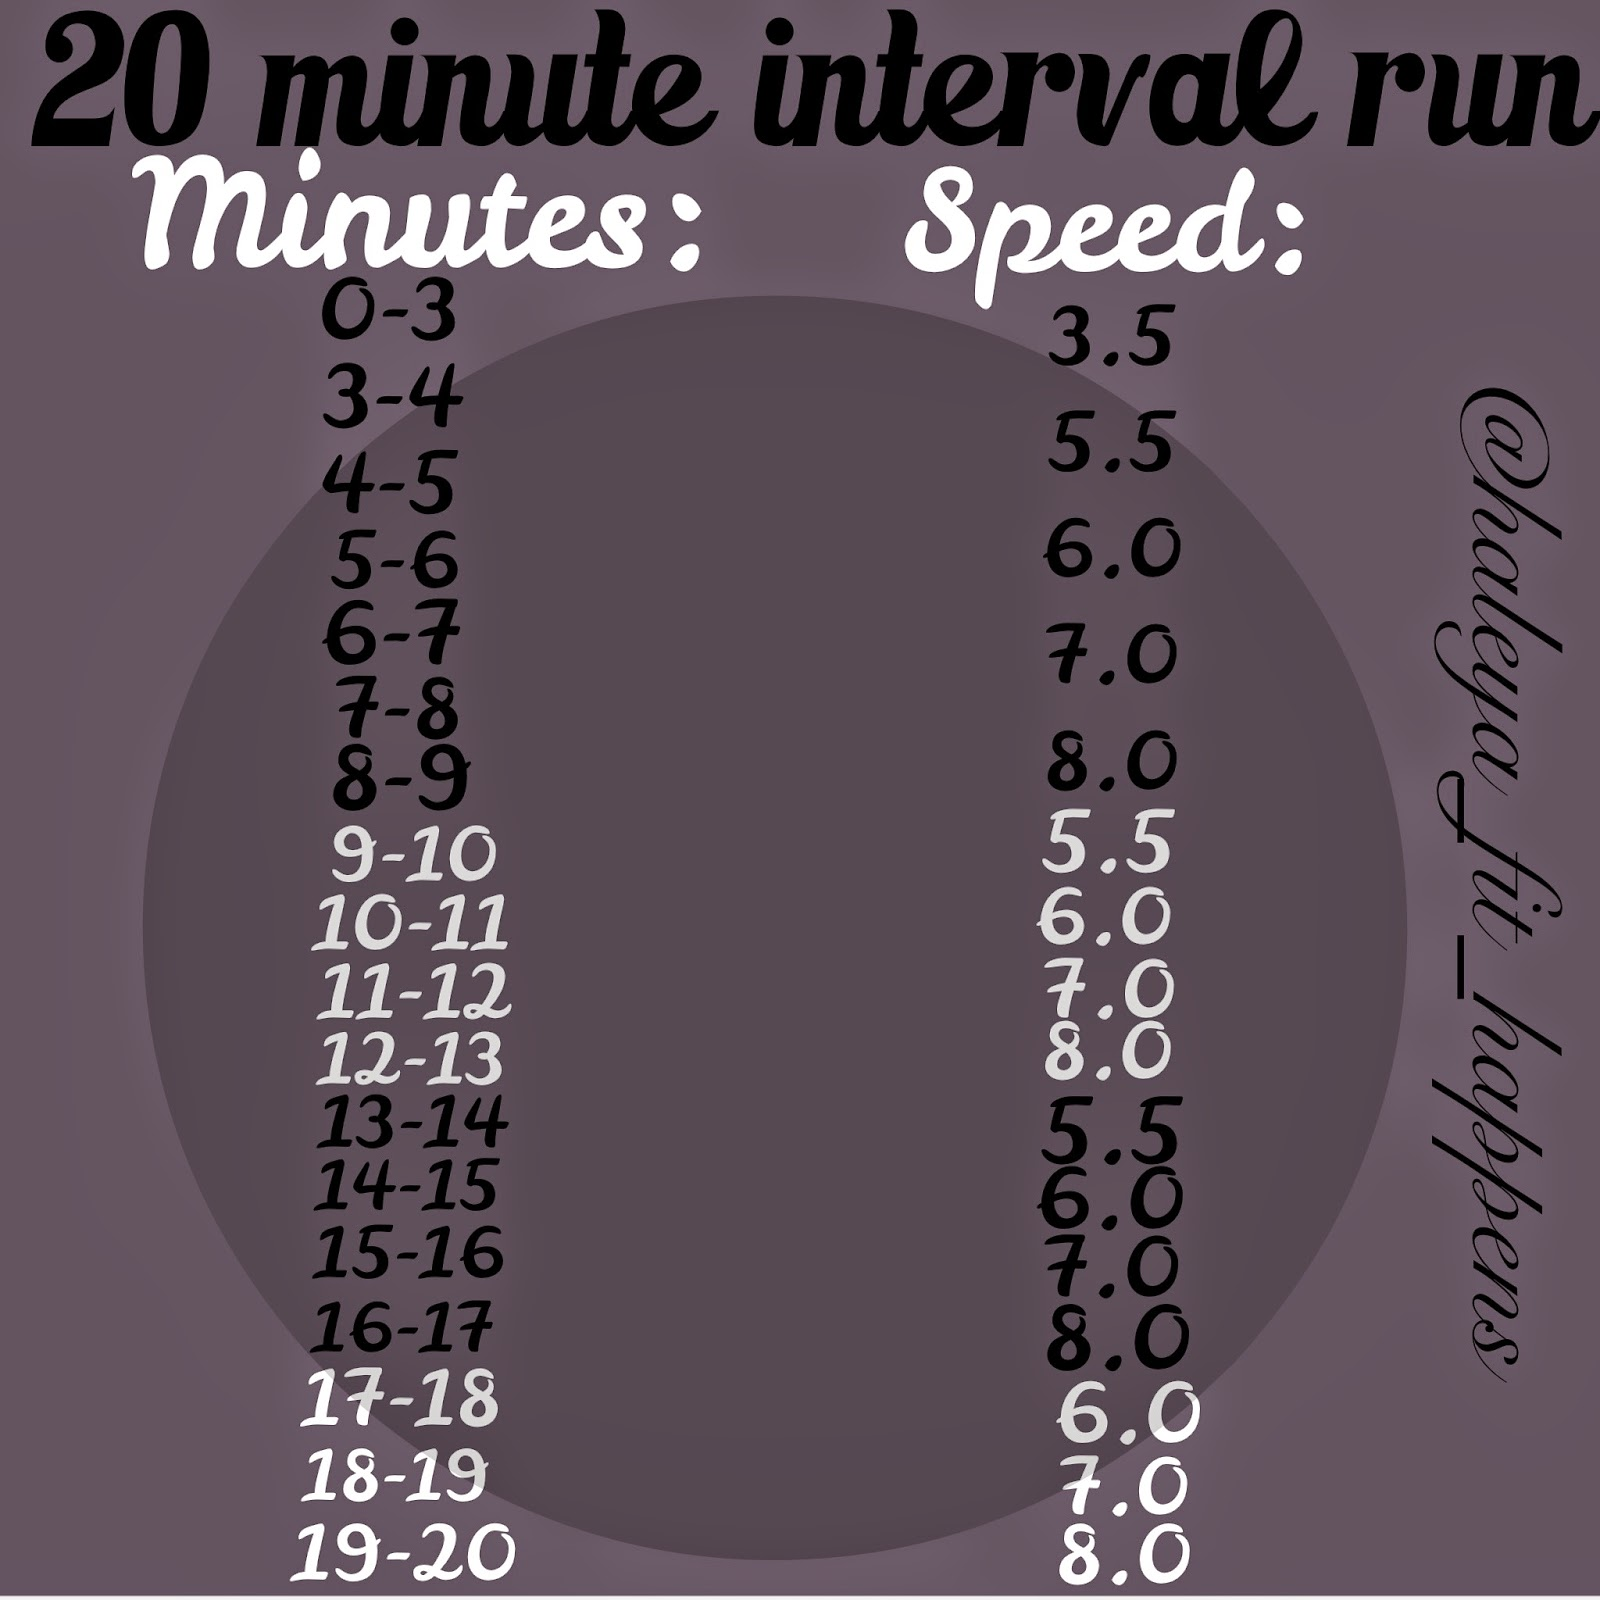 Fit Happens 20 Minute Interval Run